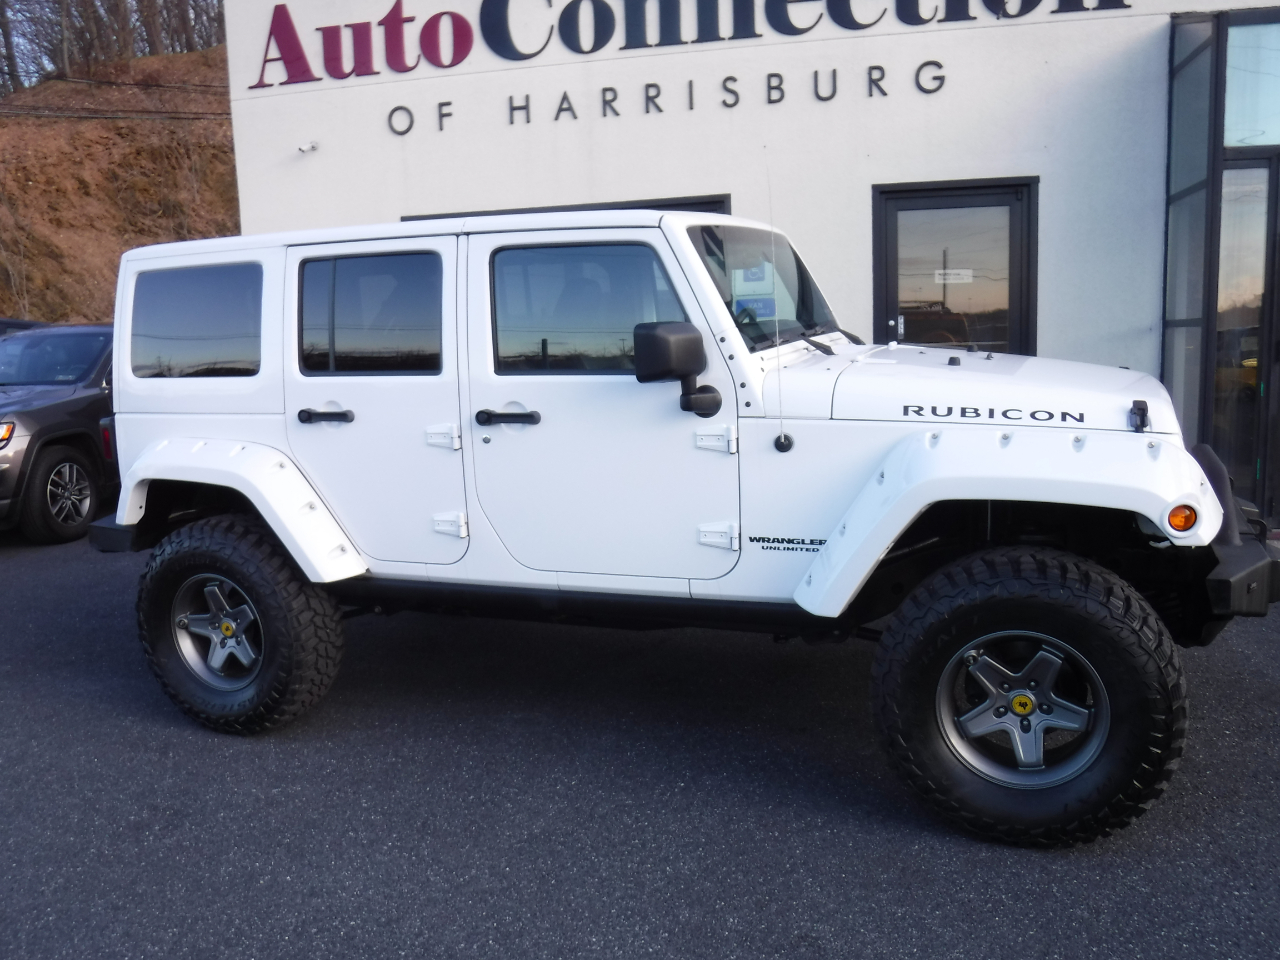 2012 Jeep Wrangler Unlimited 4WD 4dr Rubicon